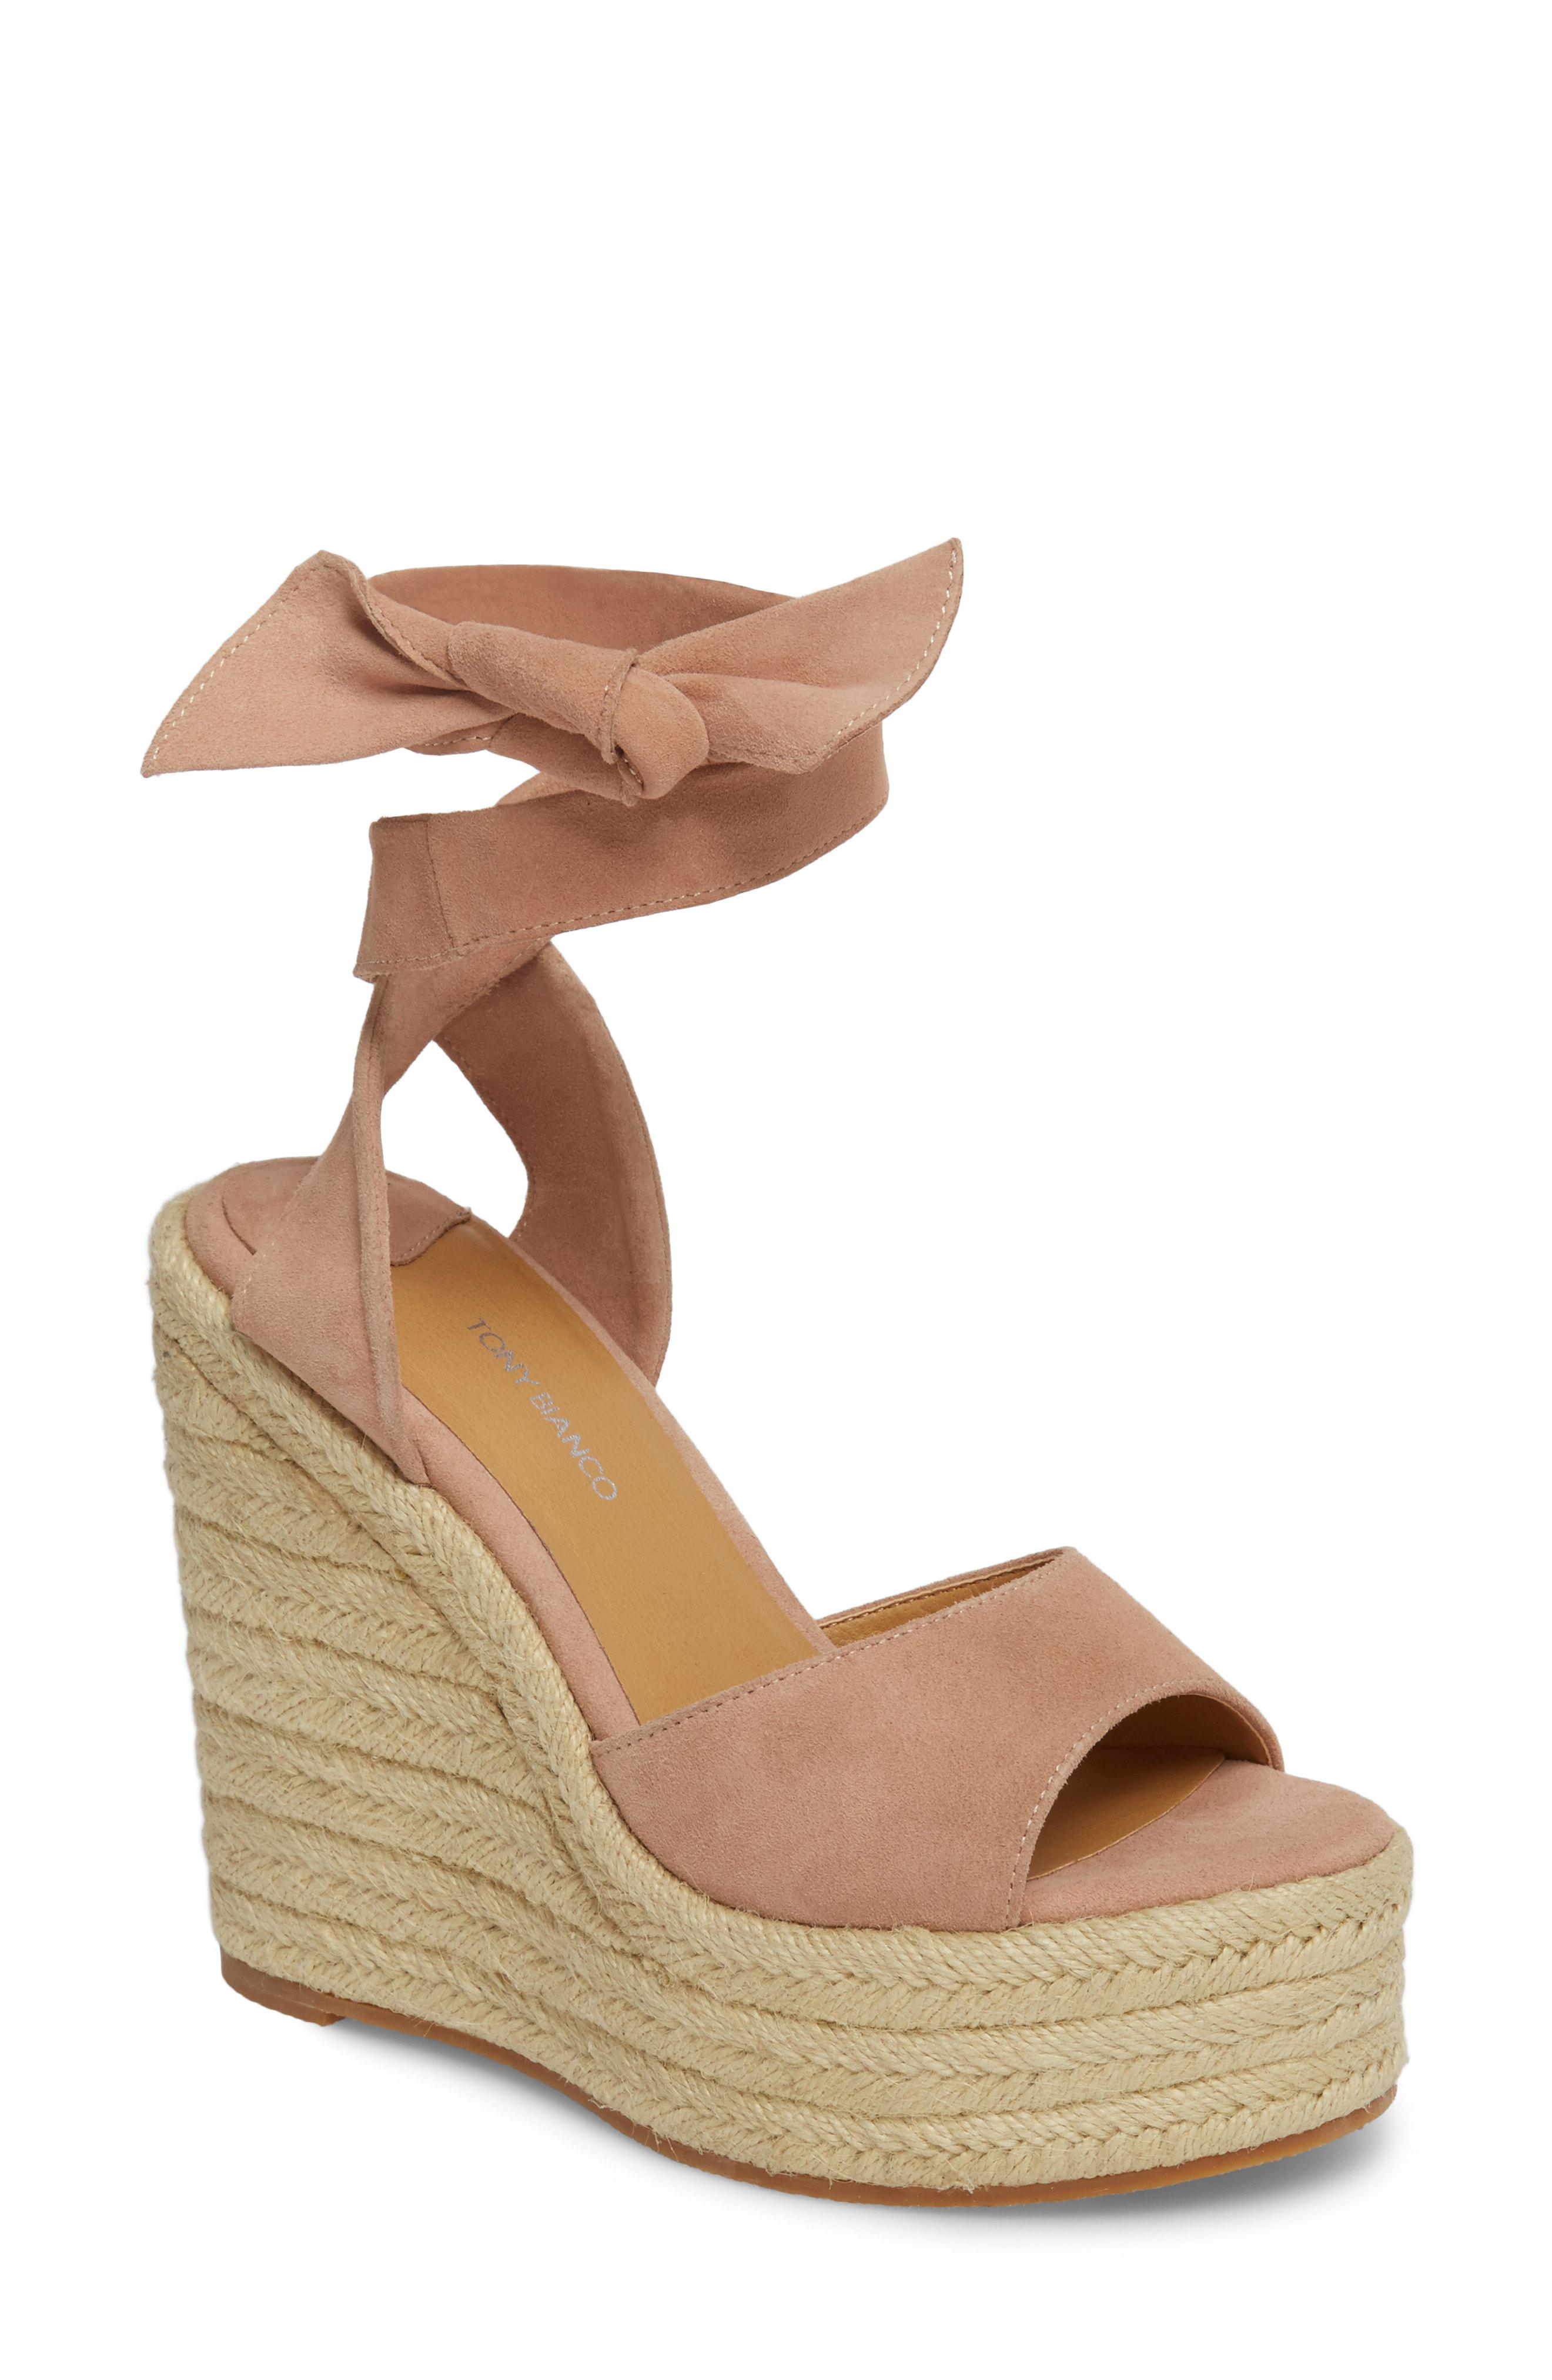 acc4268a7b75 Lyst - Tony Bianco Barca Espadrille Wedge Sandal in Brown